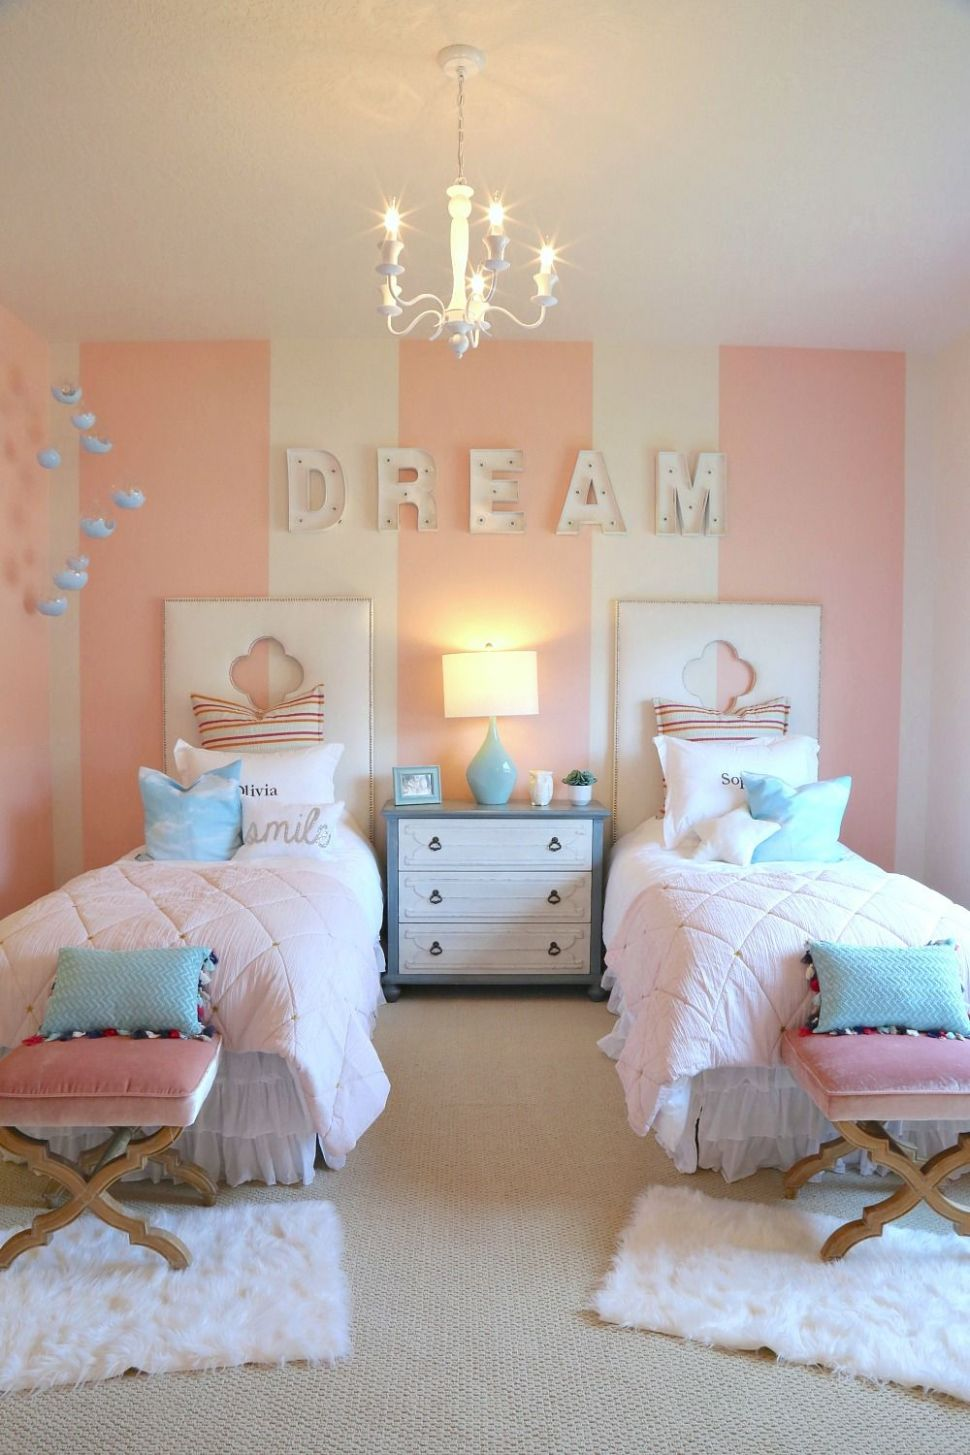 Creative Kids Bedroom Decorating Ideas (With images) | Shared ...